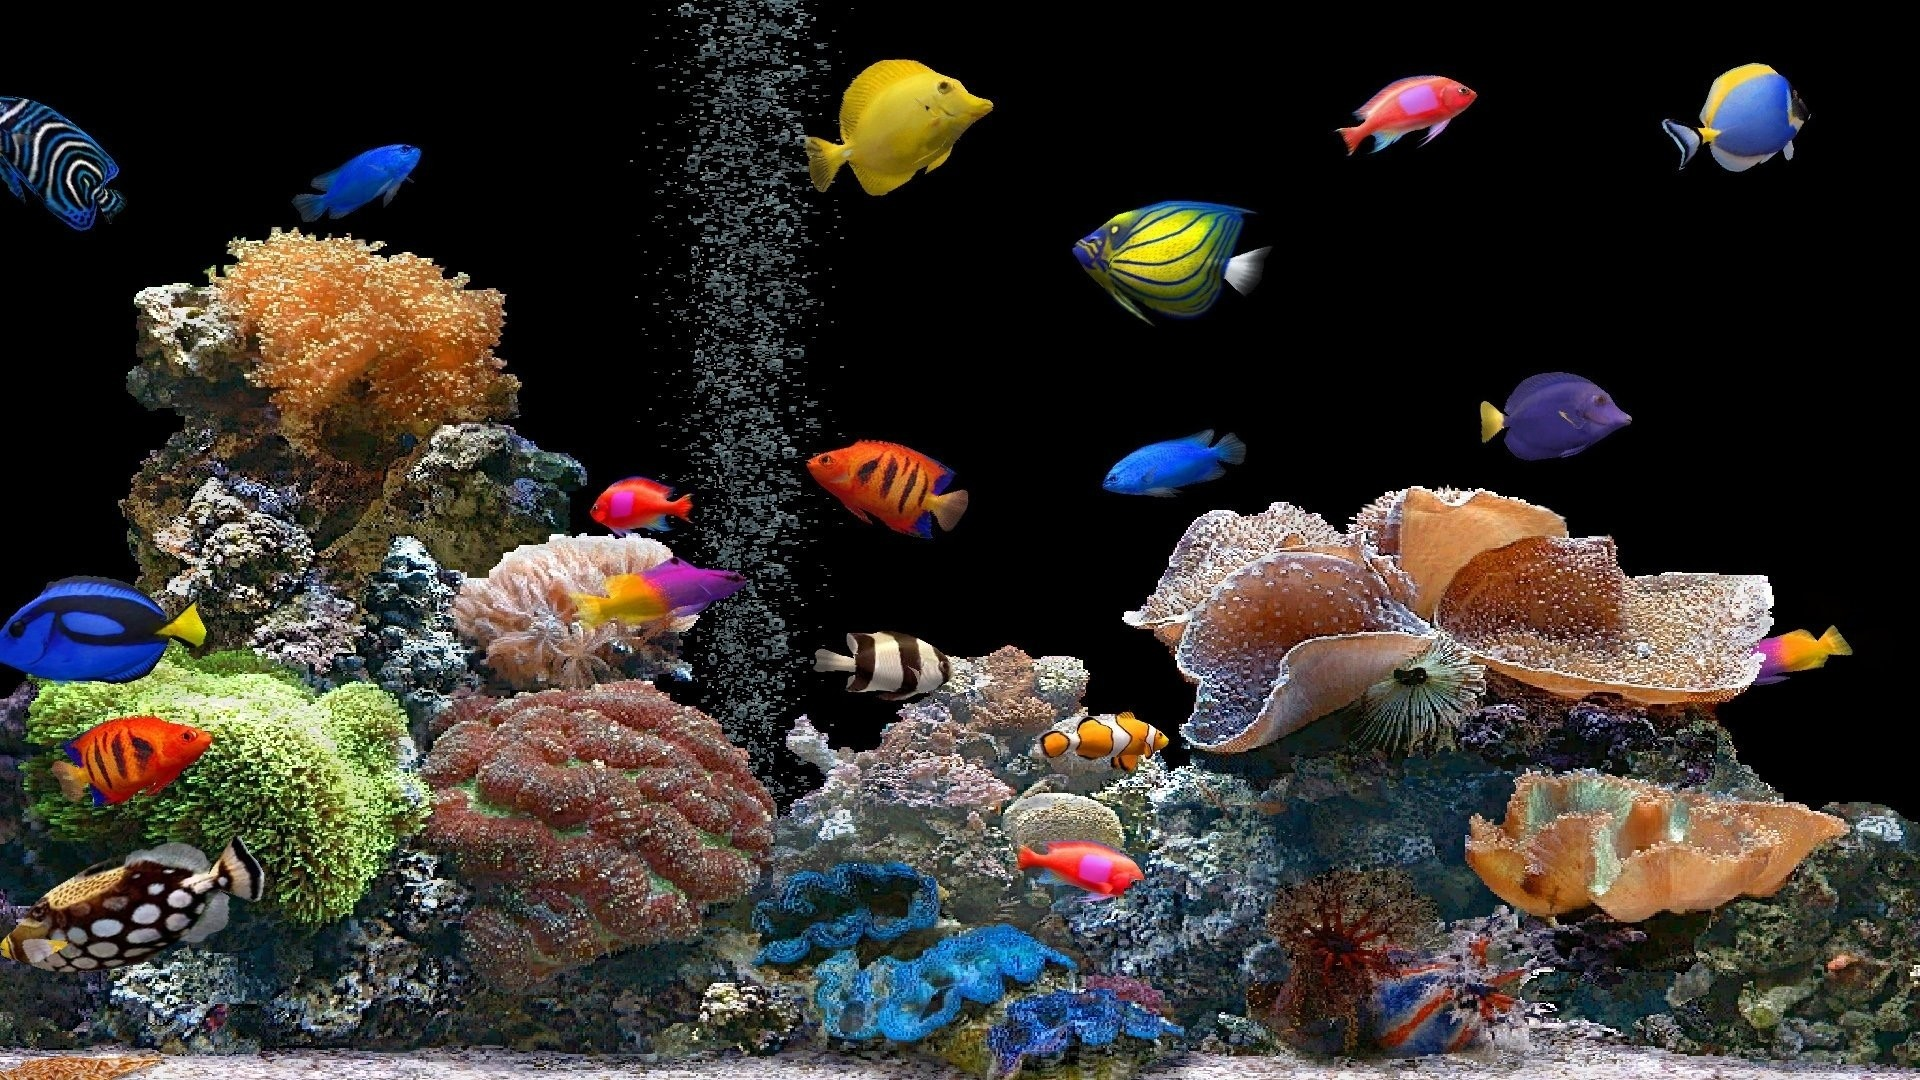 Fish Wallpapers Best Wallpapers   HD Wallpapers   Pinterest   Fish wallpaper,  Wallpaper and Animated desktop backgrounds